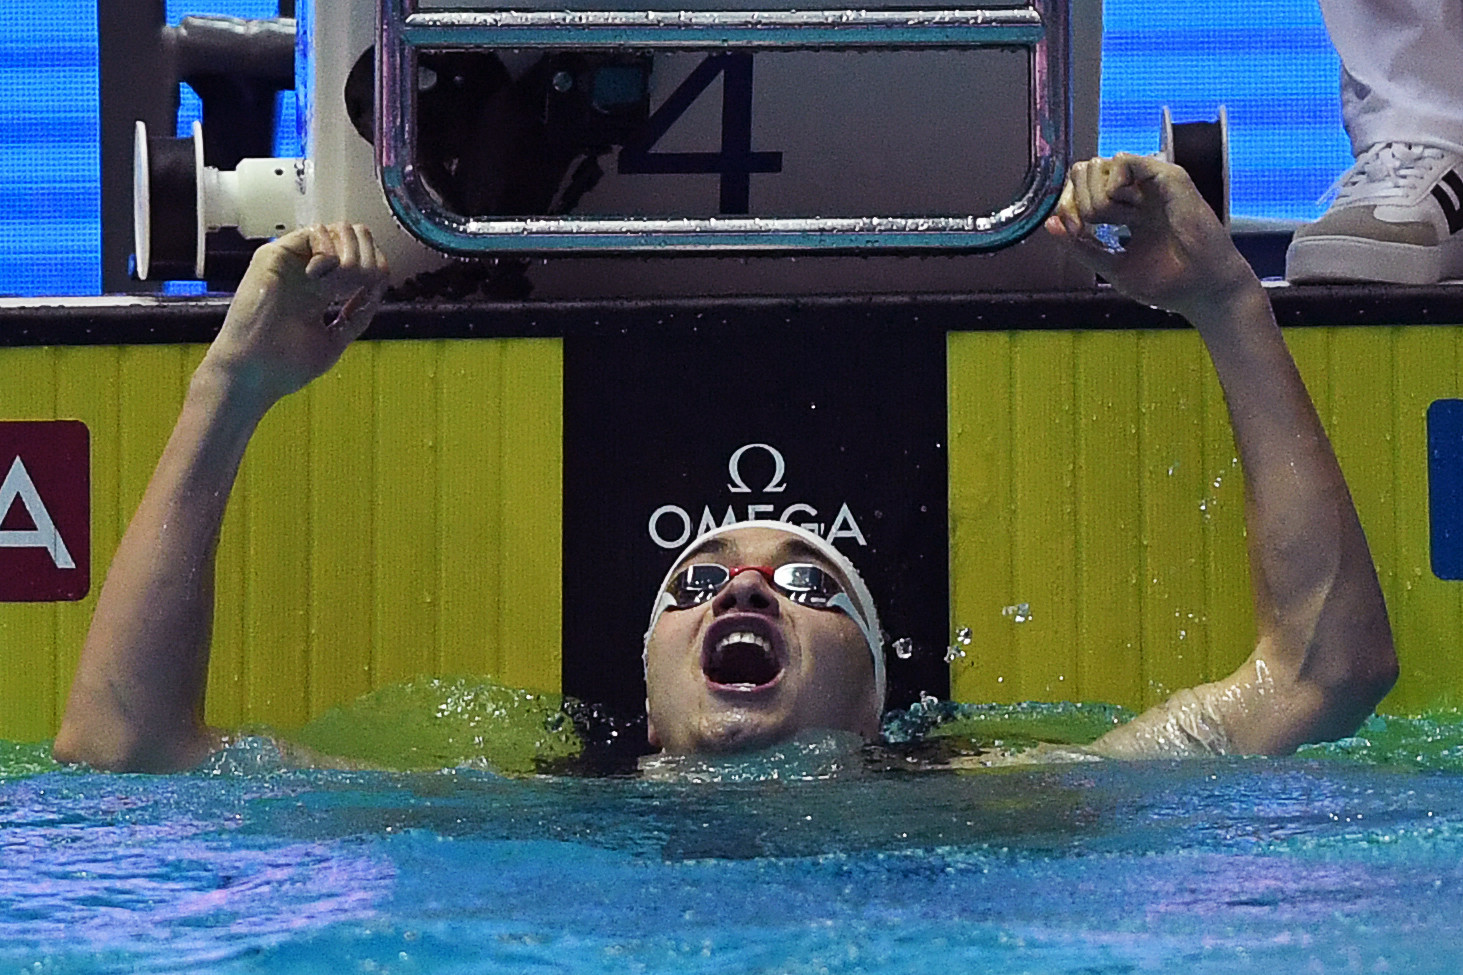 Teenager Milák claims stunning World Aquatics Championships gold by breaking Phelps' world record